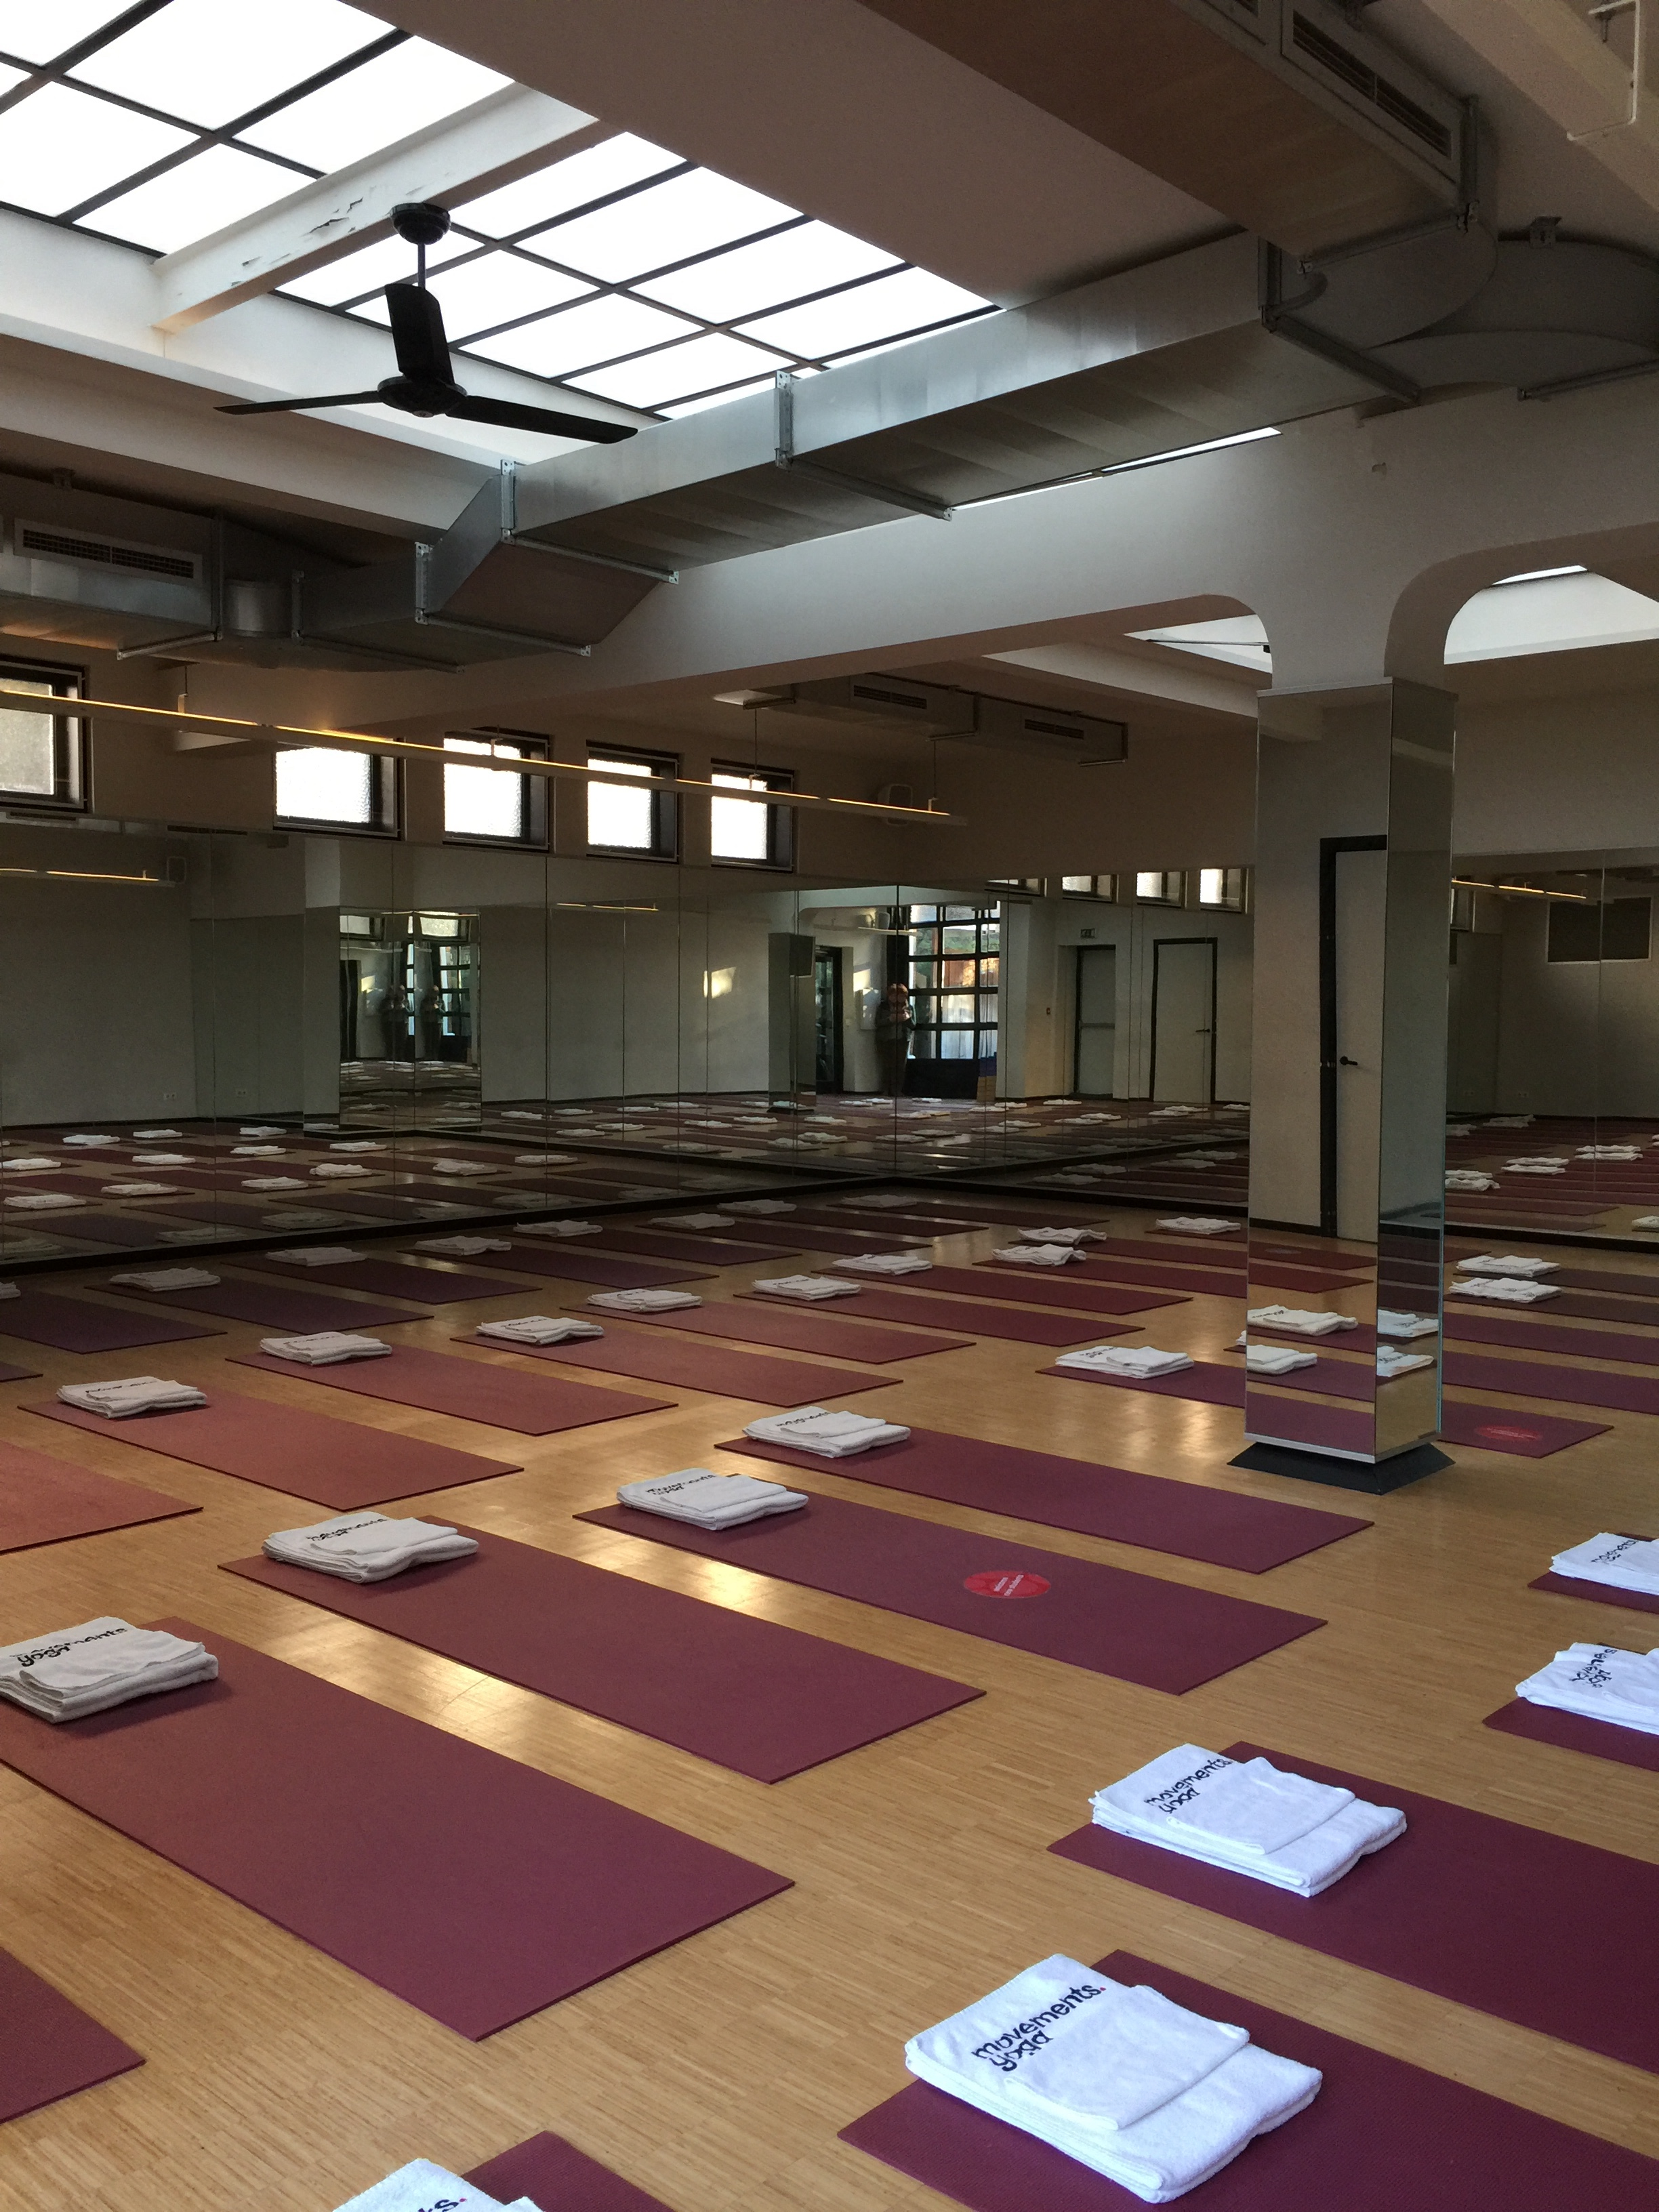 The studio in which I attended the Wim Hof breathwork workshop.